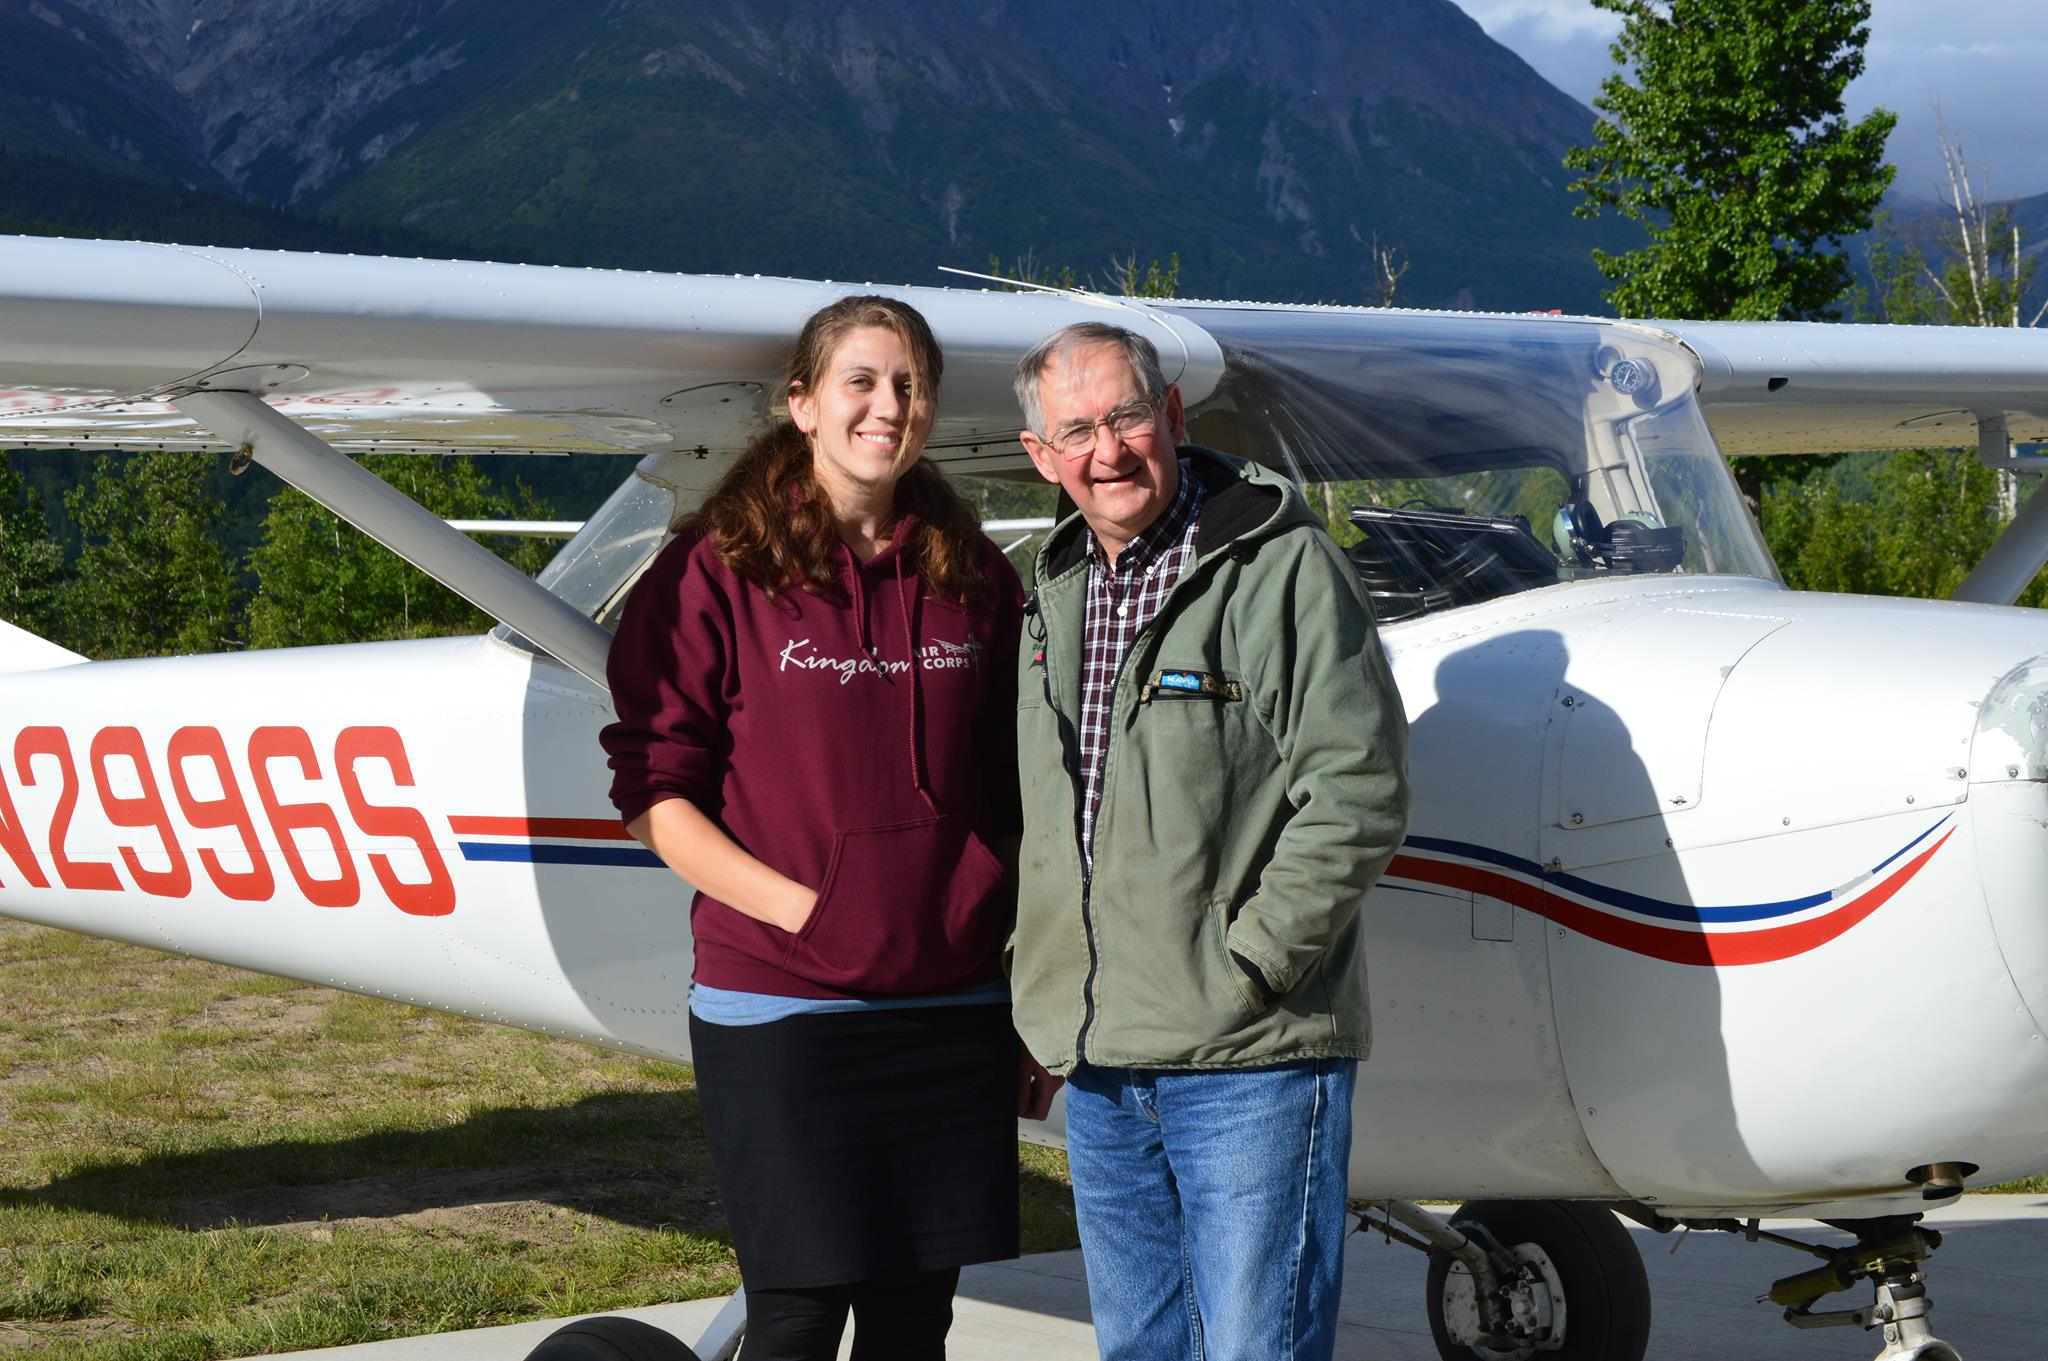 Dwayne with a student pilot after her first solo. Flight training is major aspect of the KAC ministry.